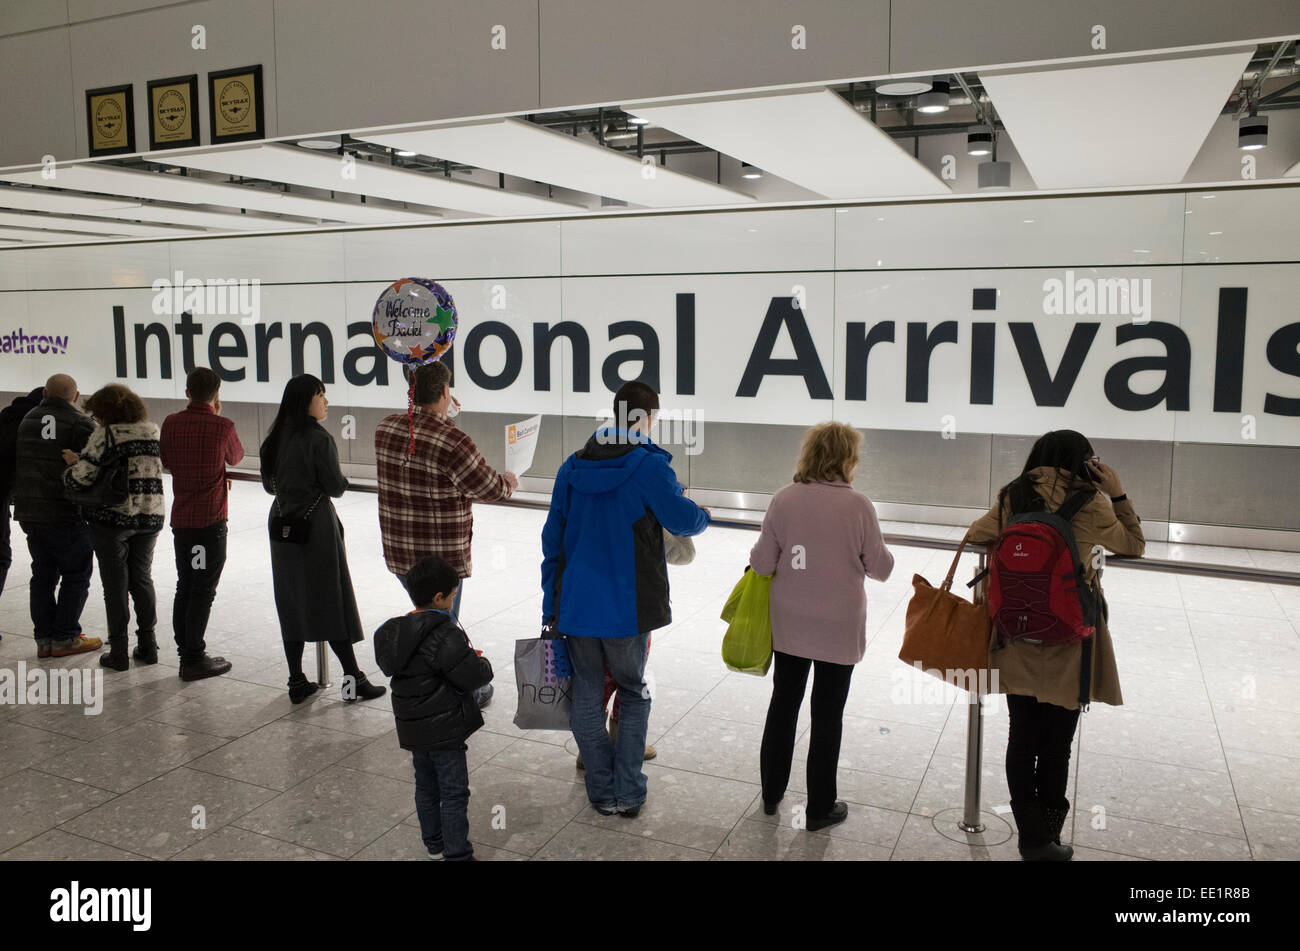 People waiting at International Arrivals at Heathrow airport in Britain - Stock Image